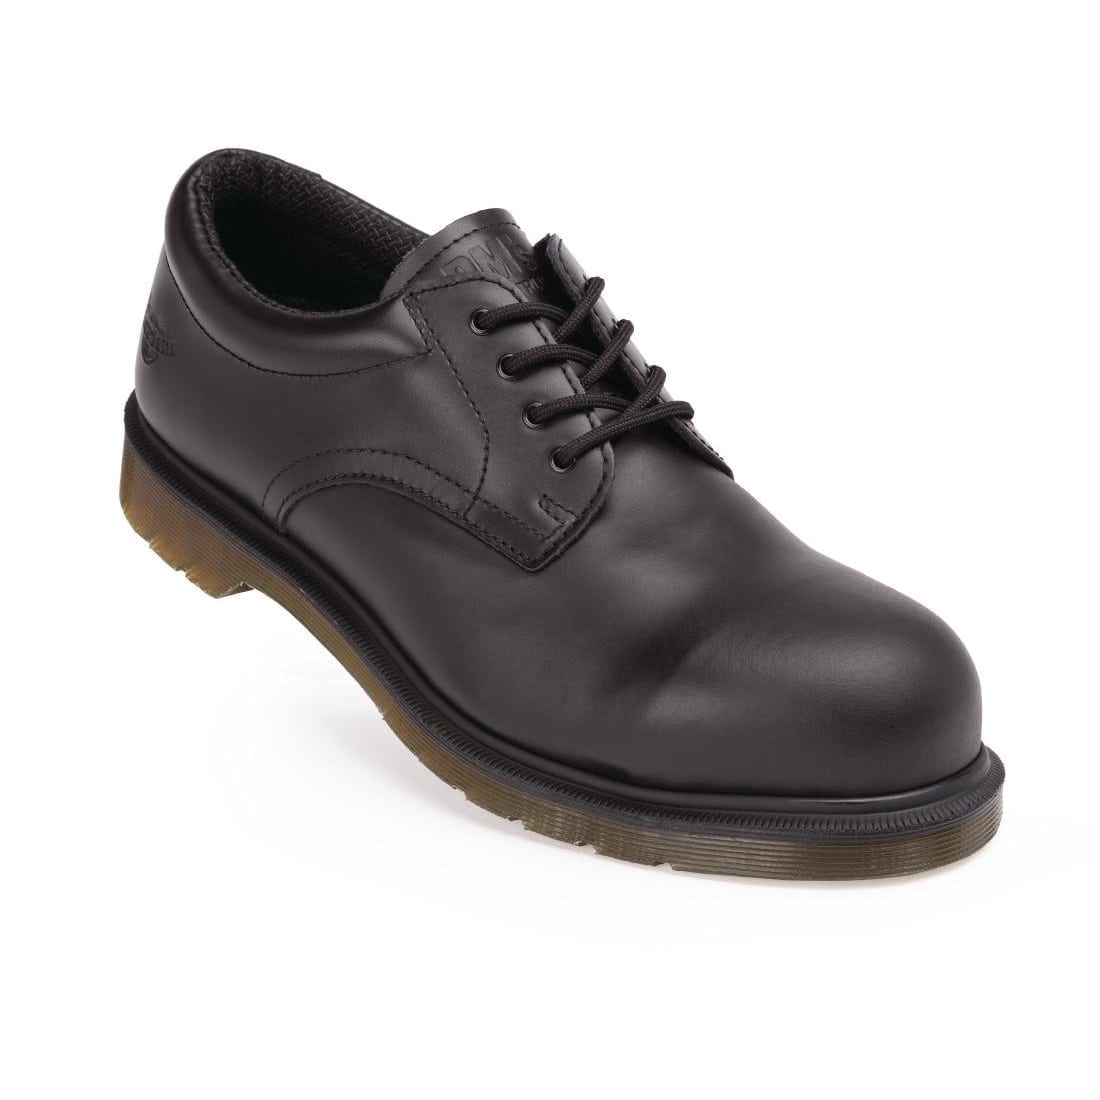 Dr Martens Classic Black Icon Safety Shoe - Size 43-0